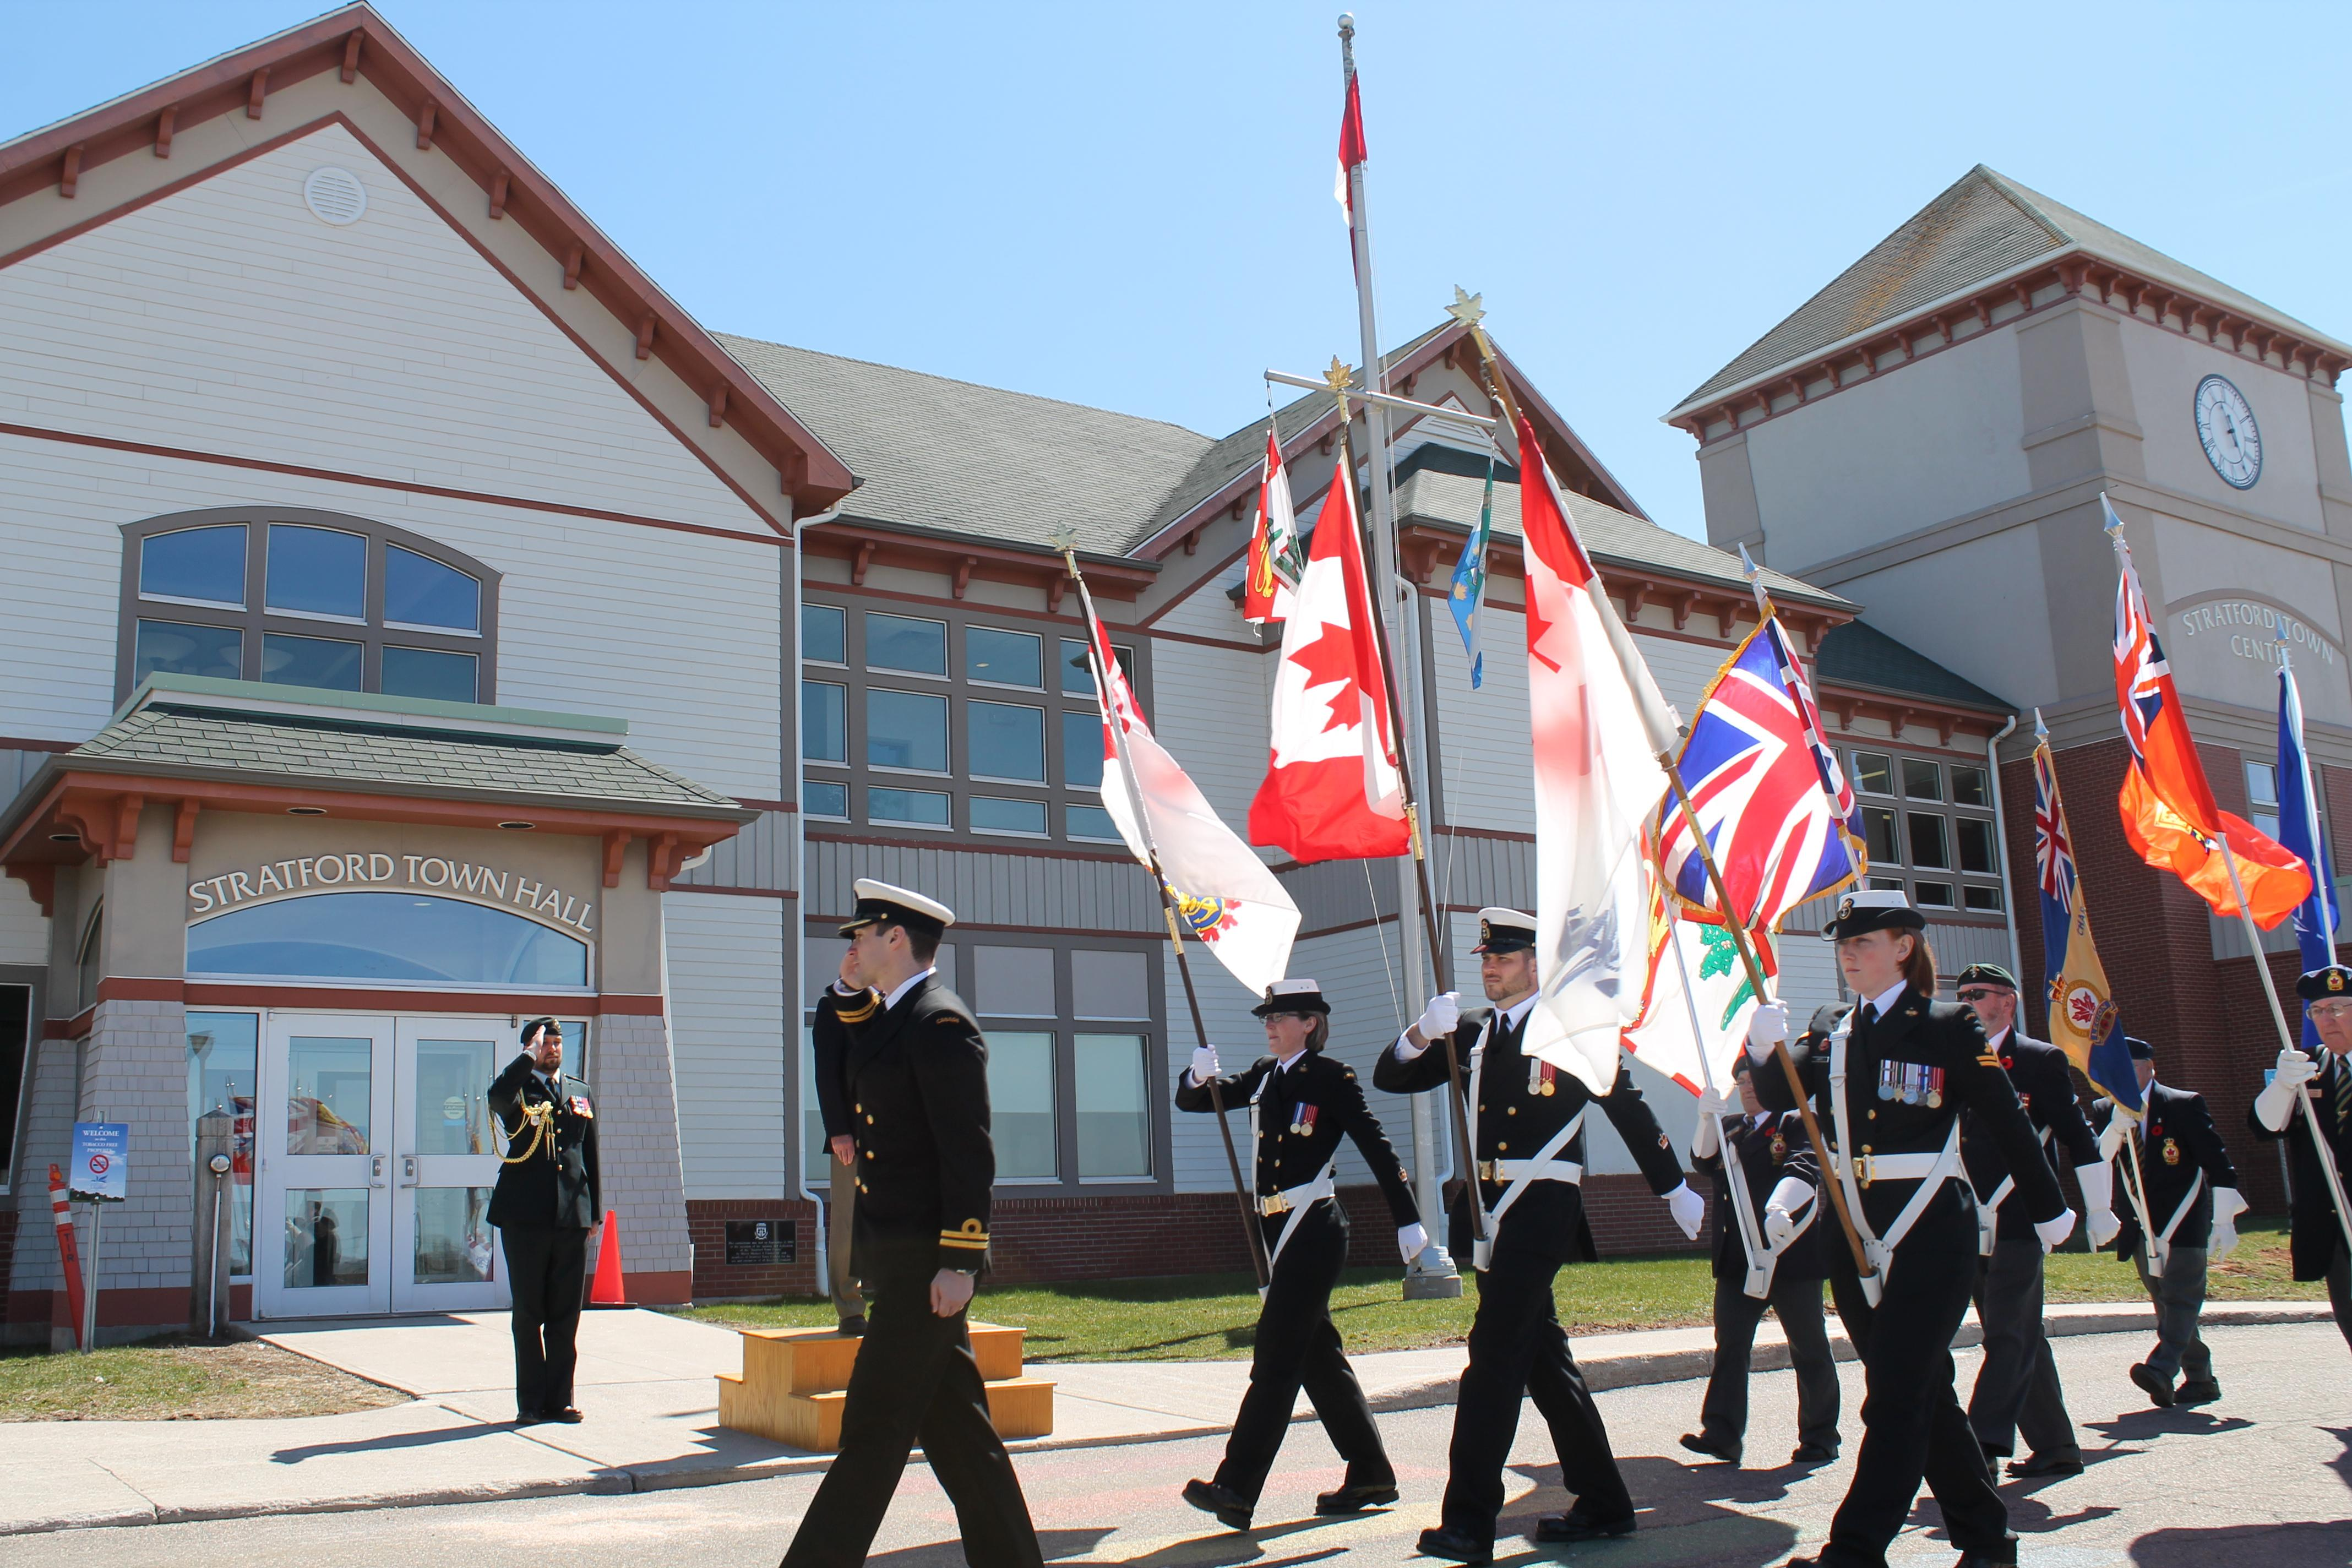 Lt(N) John MacDonald leads the combined HMCS Queen Charlotte and Charlottetown Royal Canadian Legion Colour Party